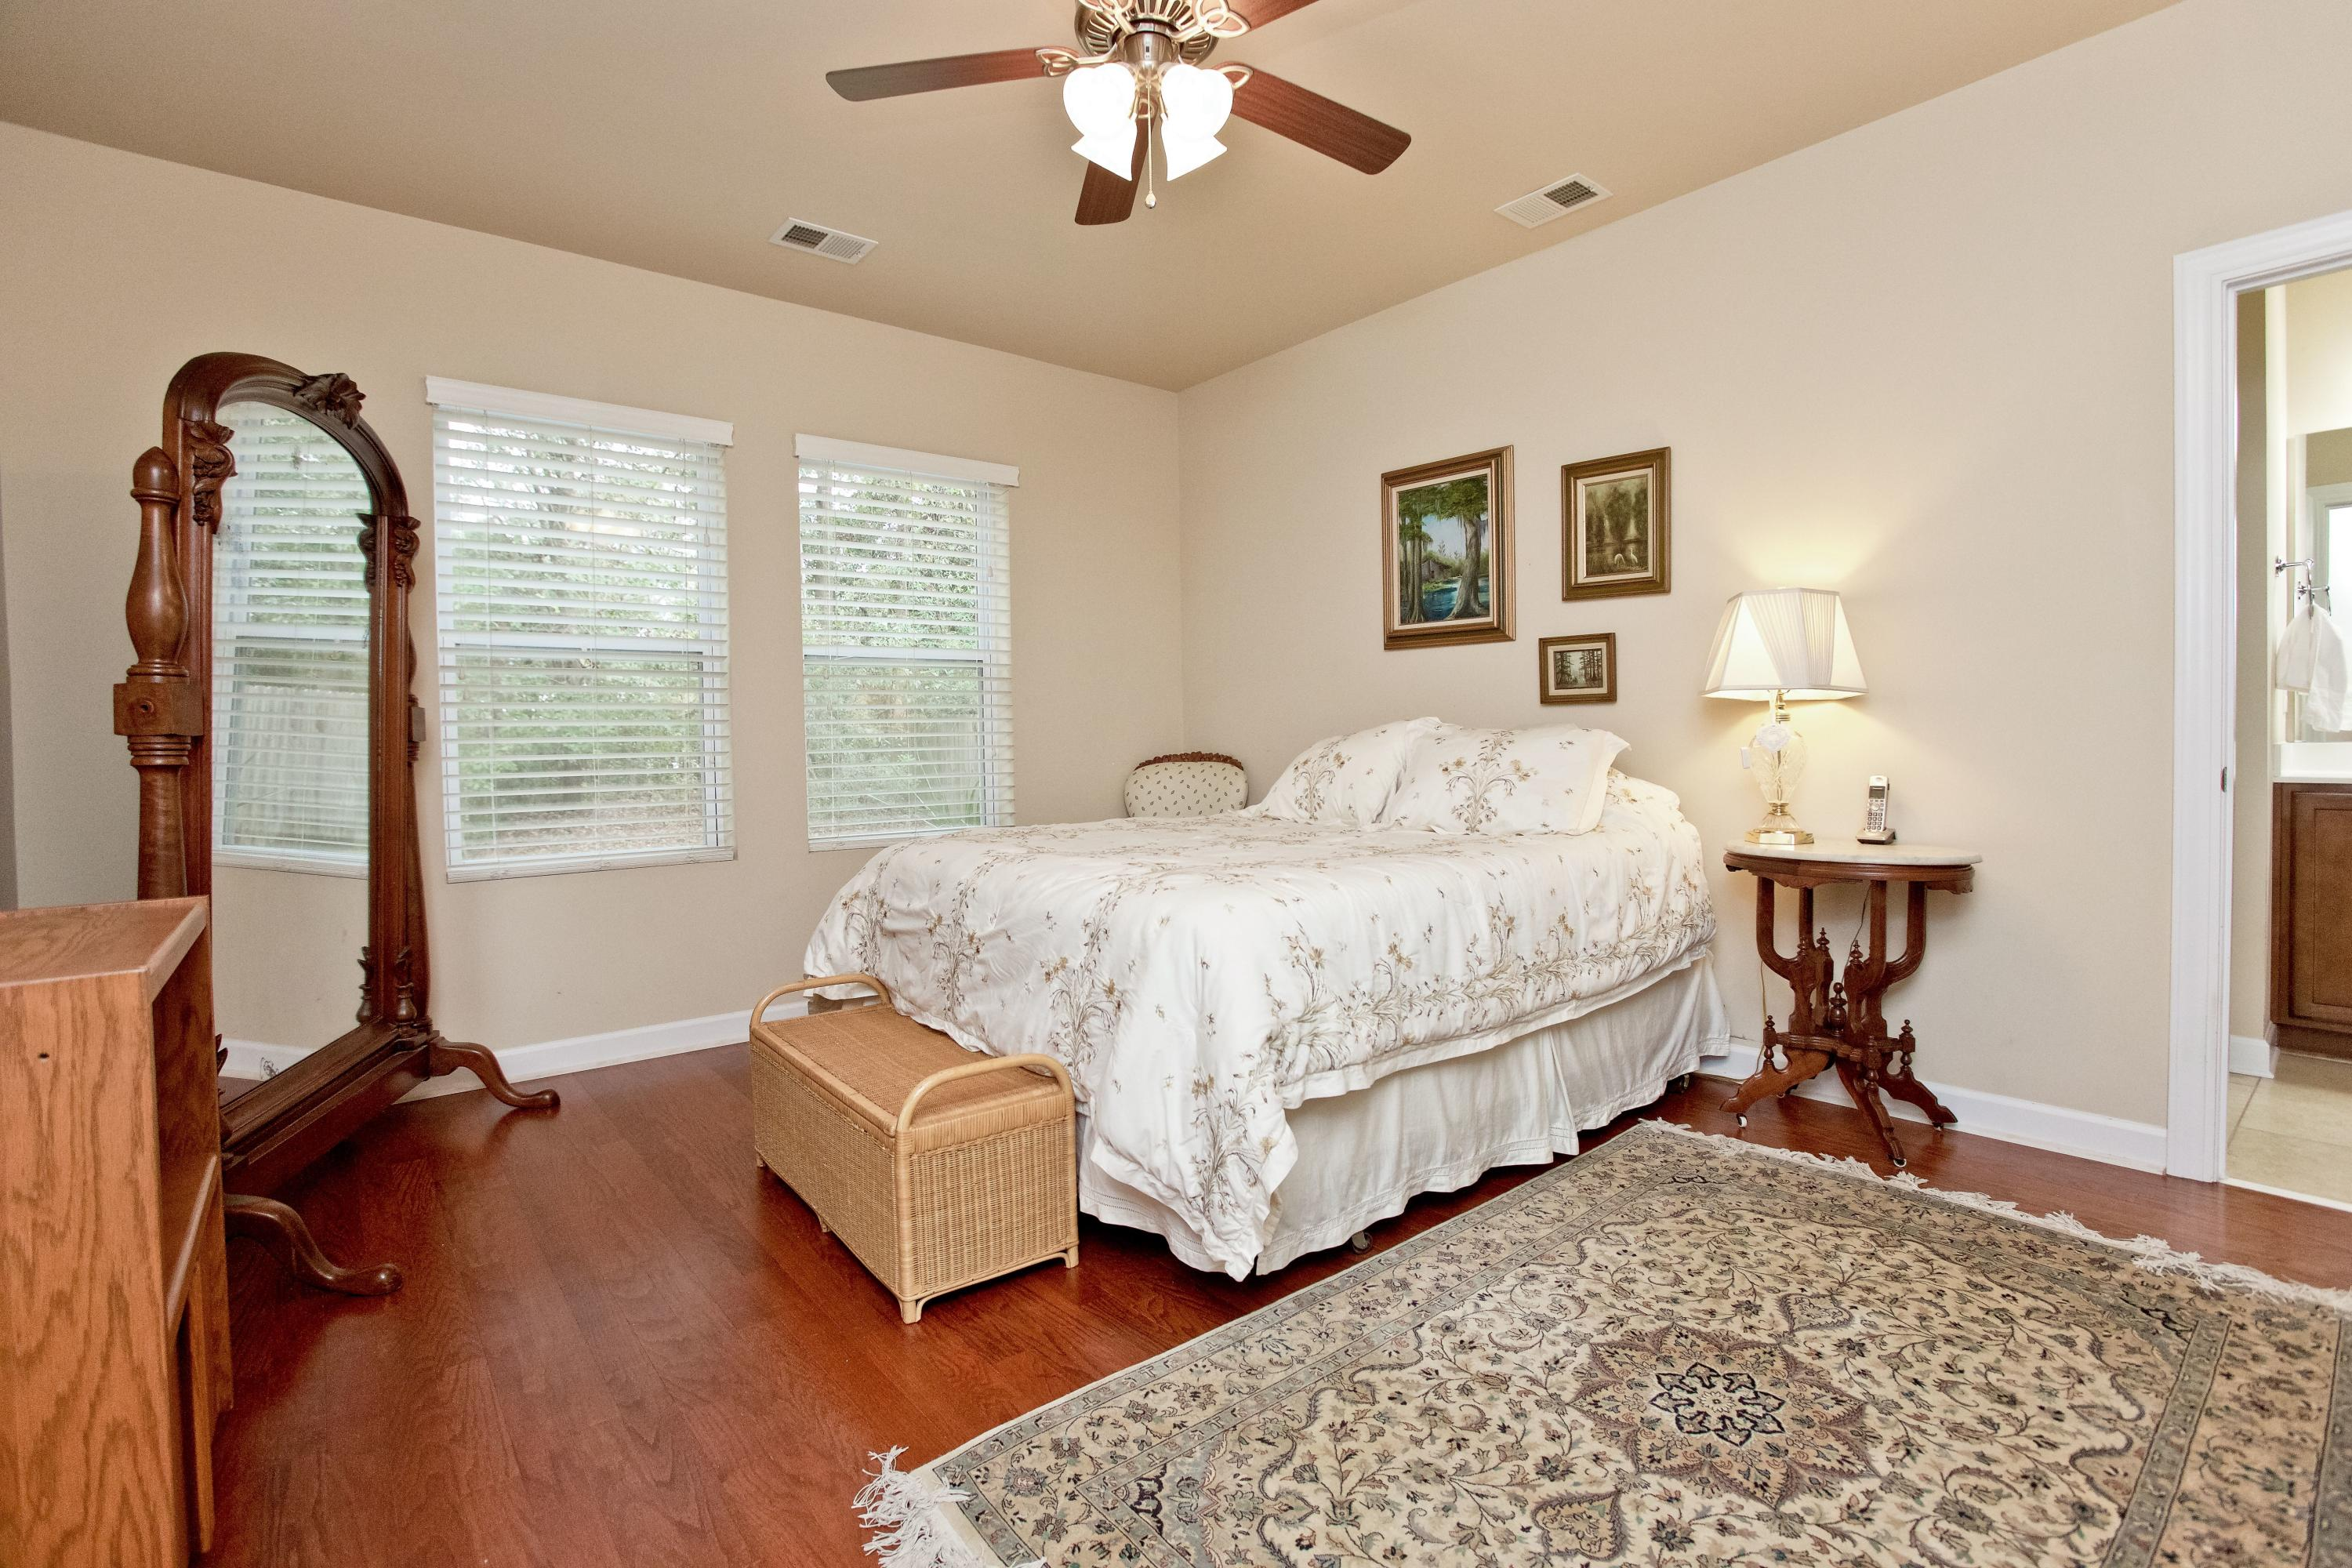 Appian Way Homes For Sale - 8473 Athens, North Charleston, SC - 28